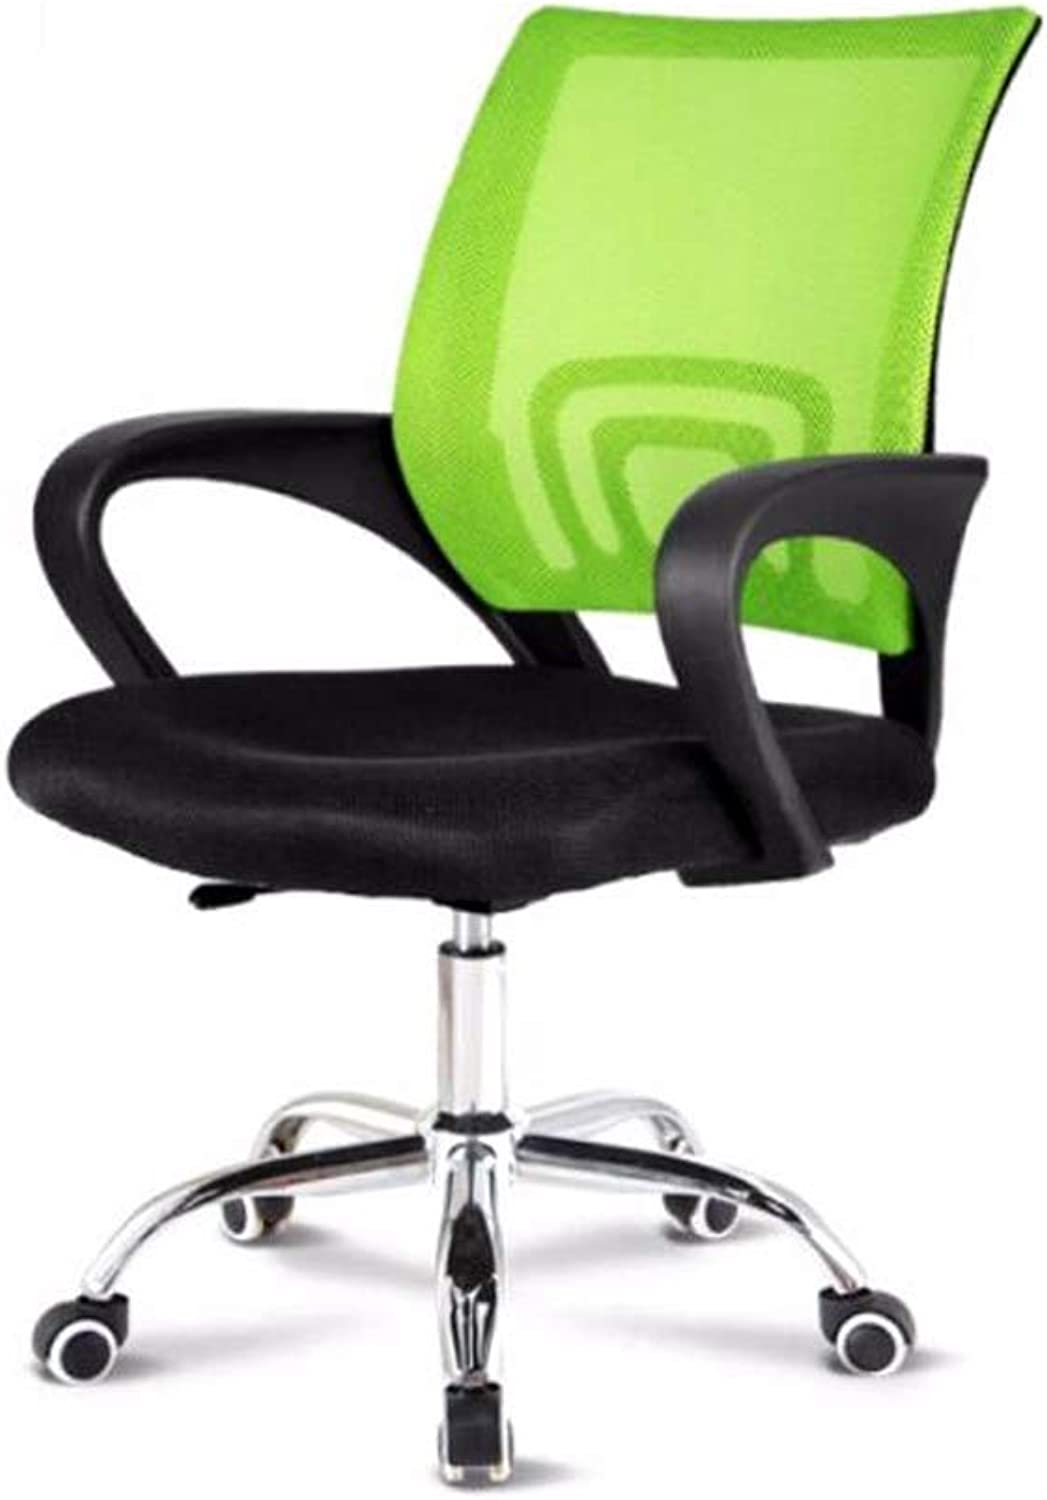 JJSP Restaurant office game swivel chair, ergonomic redating mesh table and chairs, chair with wheels and lifts ( color   Green )